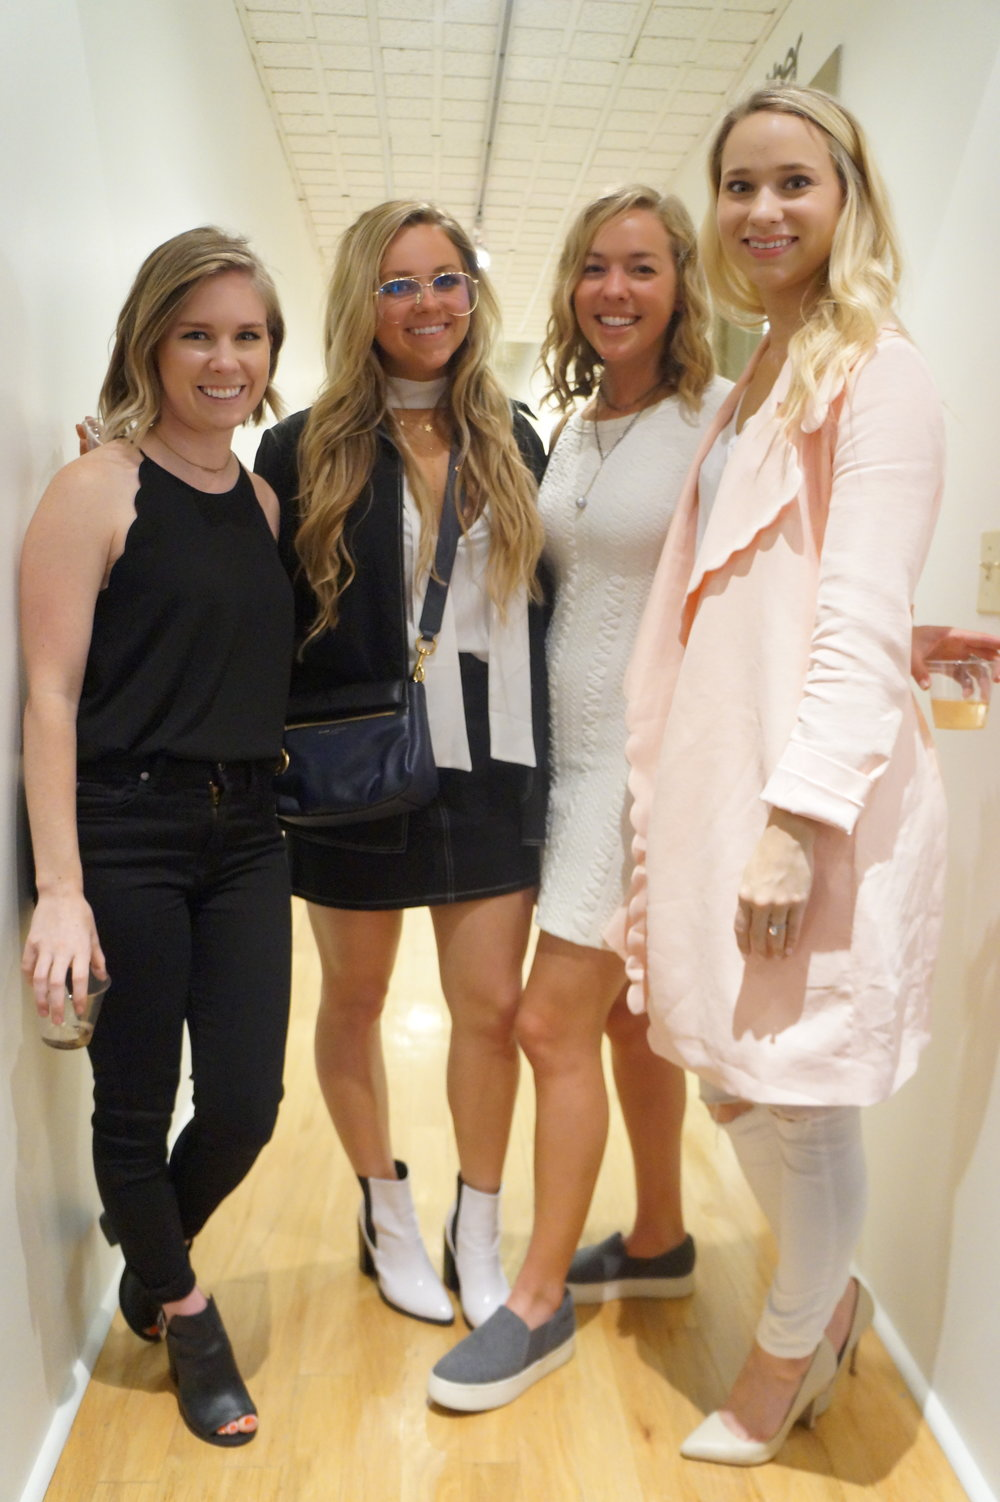 Andrea Fenise covers Memphis Fashion Week's Media Night